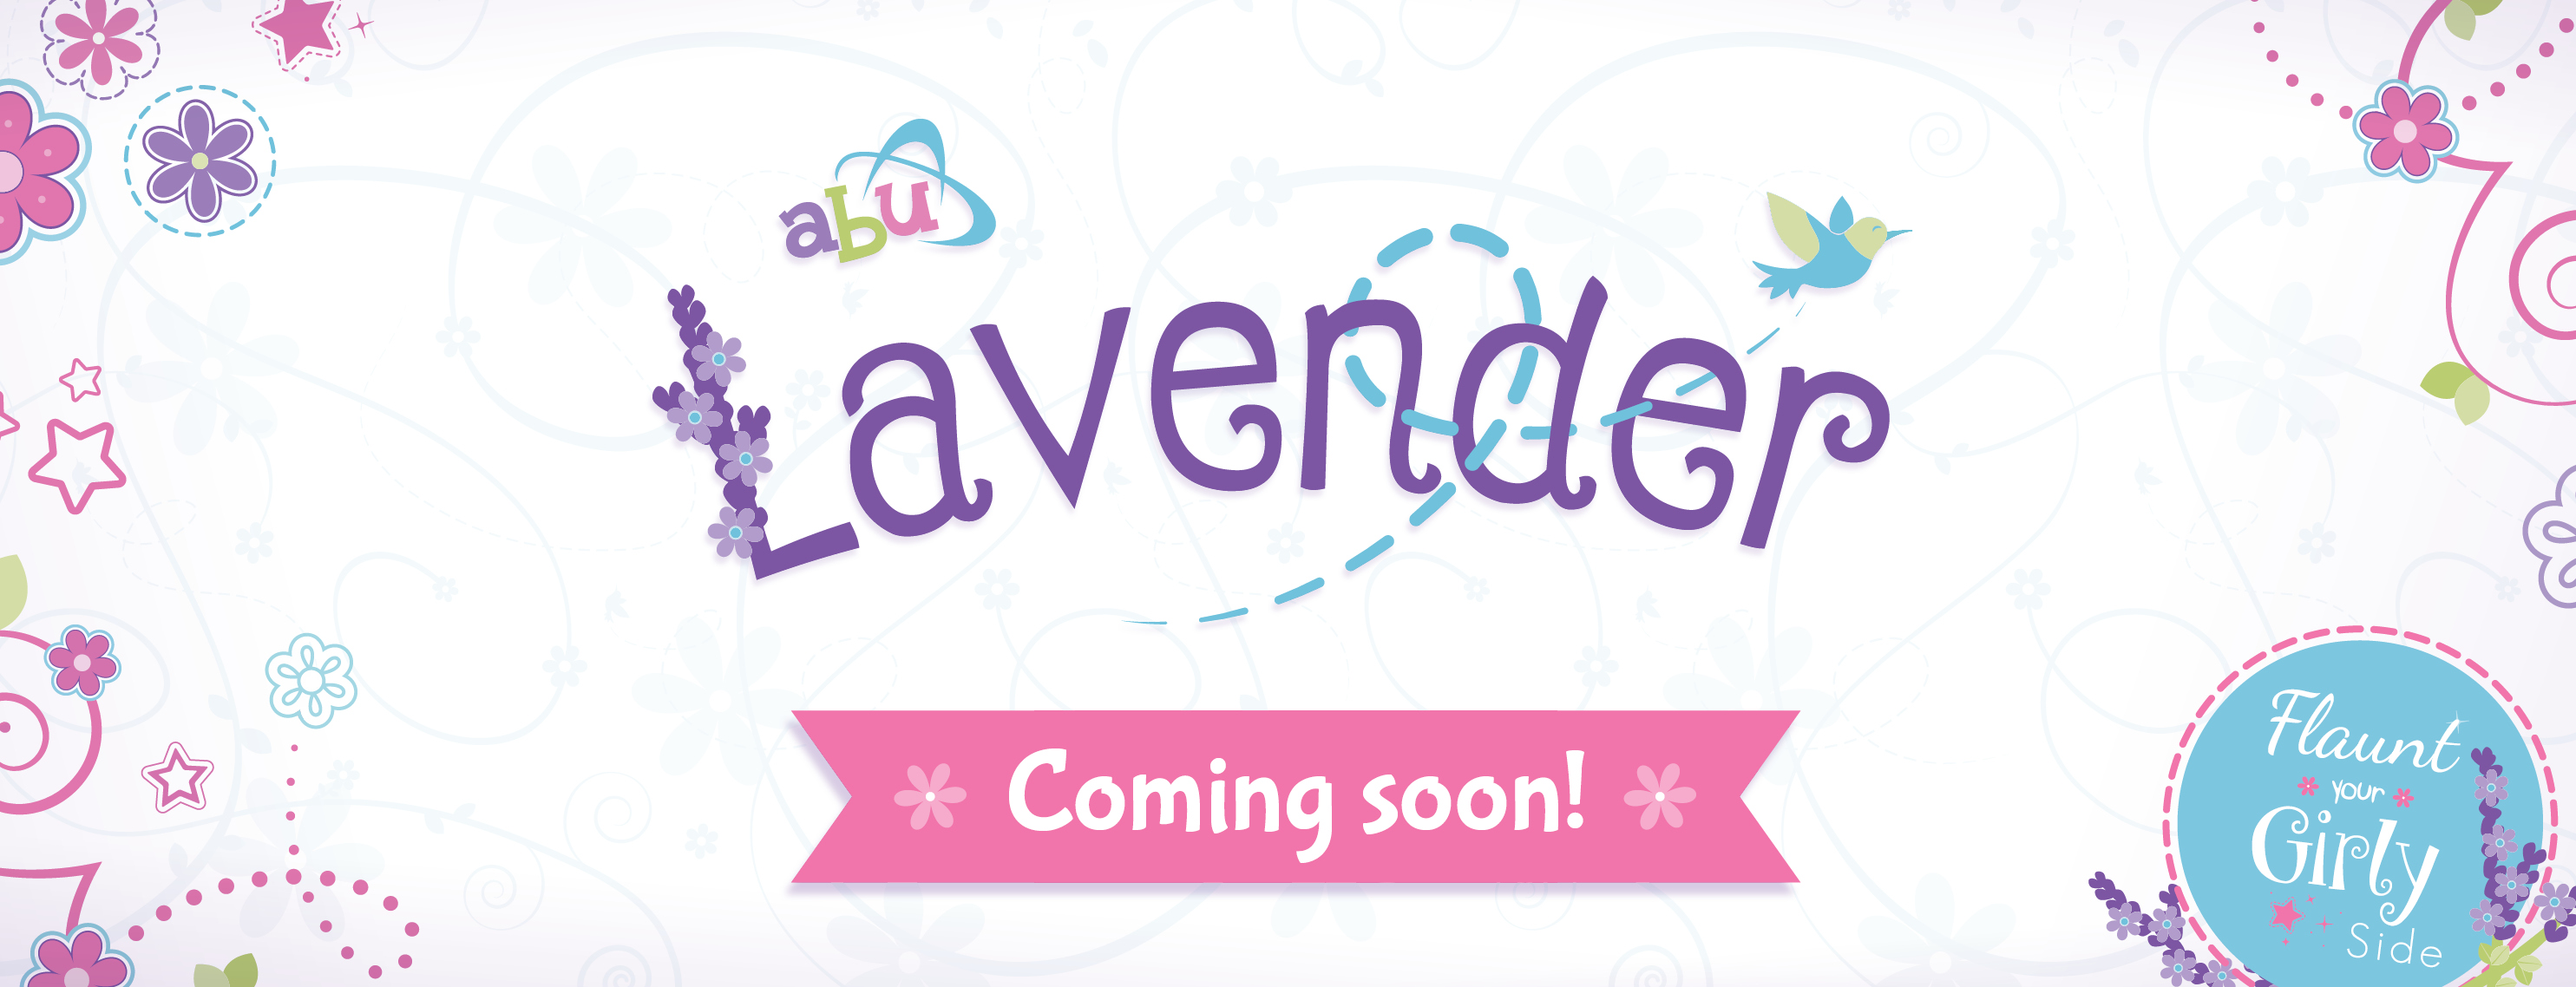 Lavender_Banner_Coming_Soon